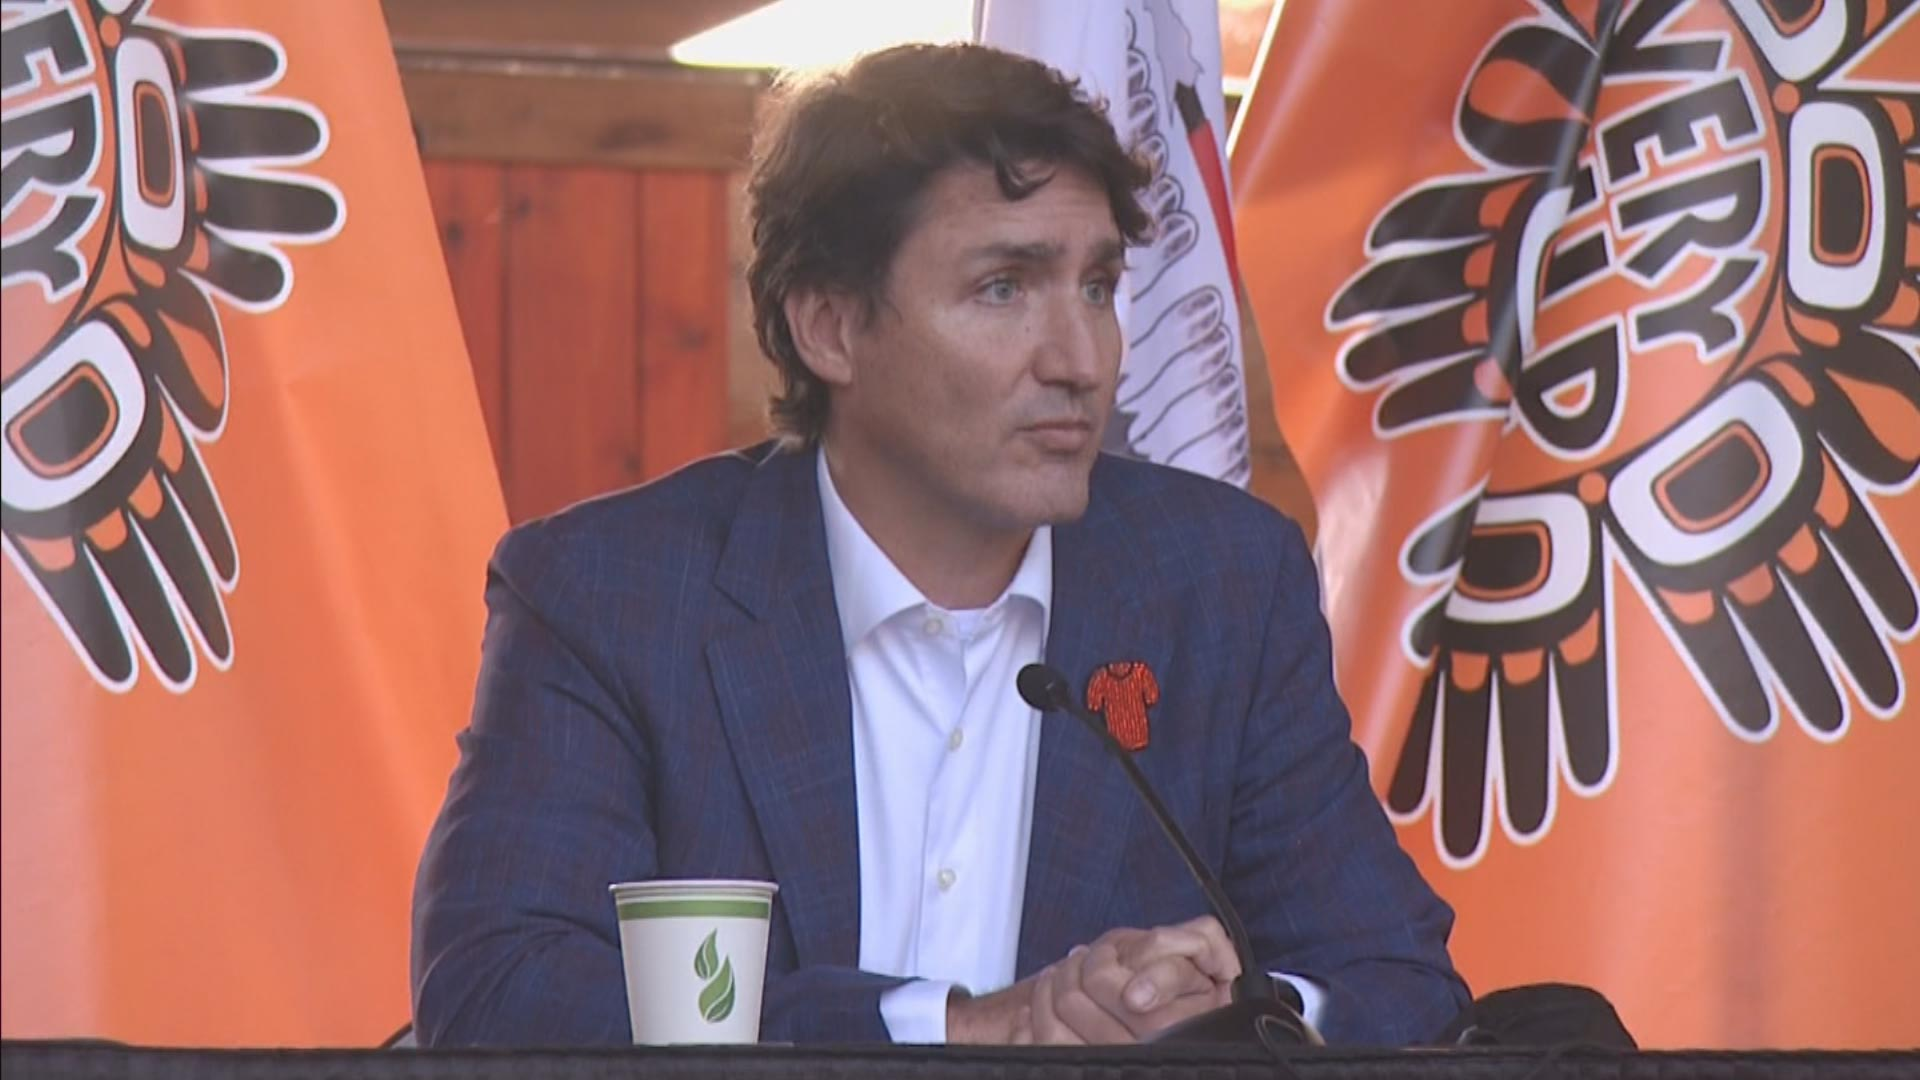 Trudeau should 'resign' over school documents comment says chief in B.C.